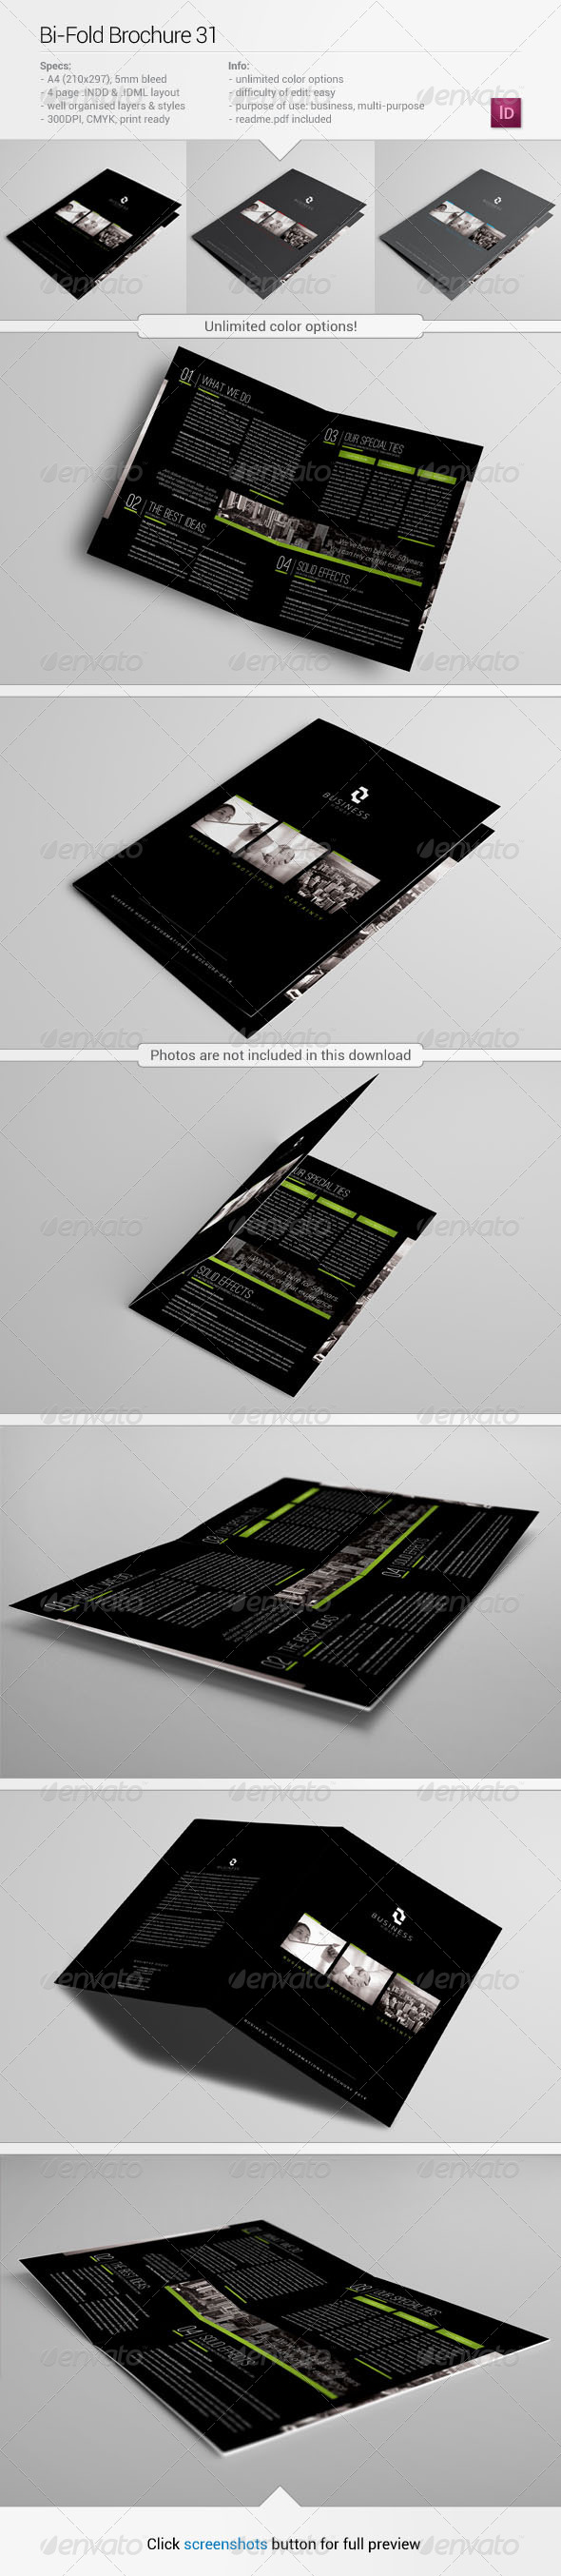 GraphicRiver Bi-Fold Brochure 31 5862269